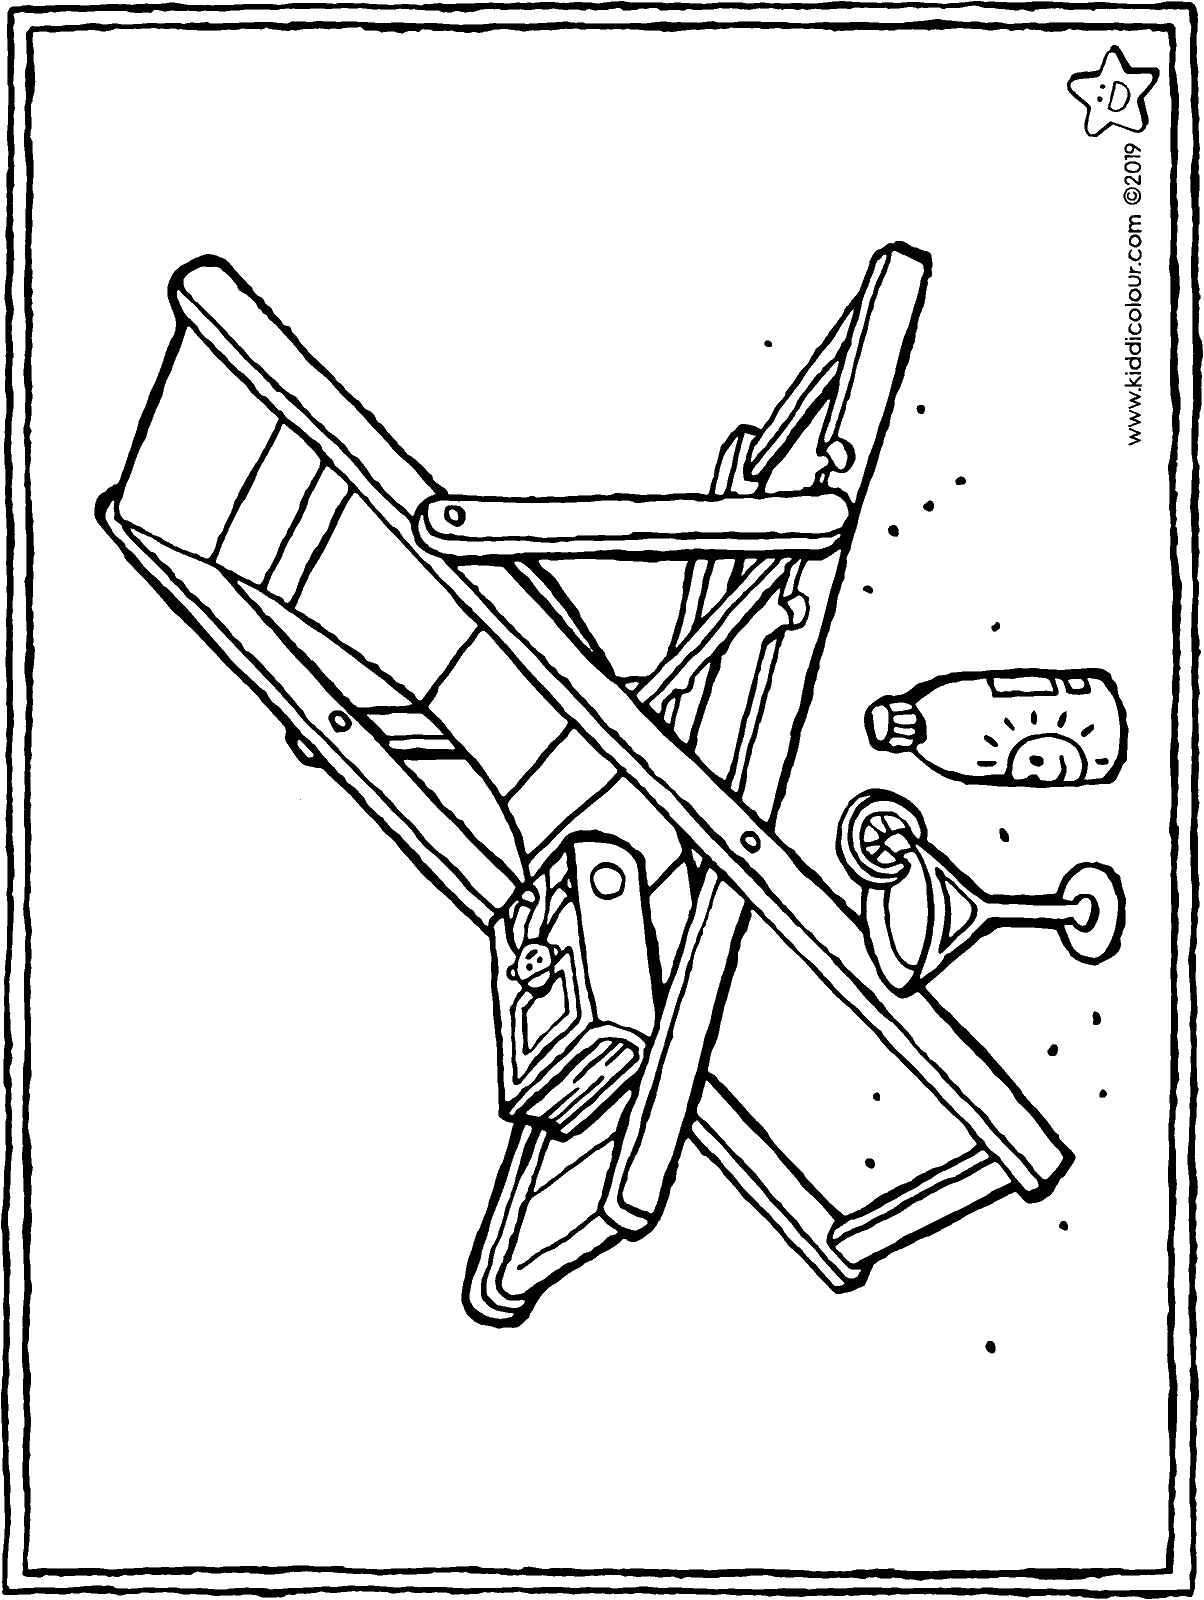 a deckchair colouring page drawing picture 01H